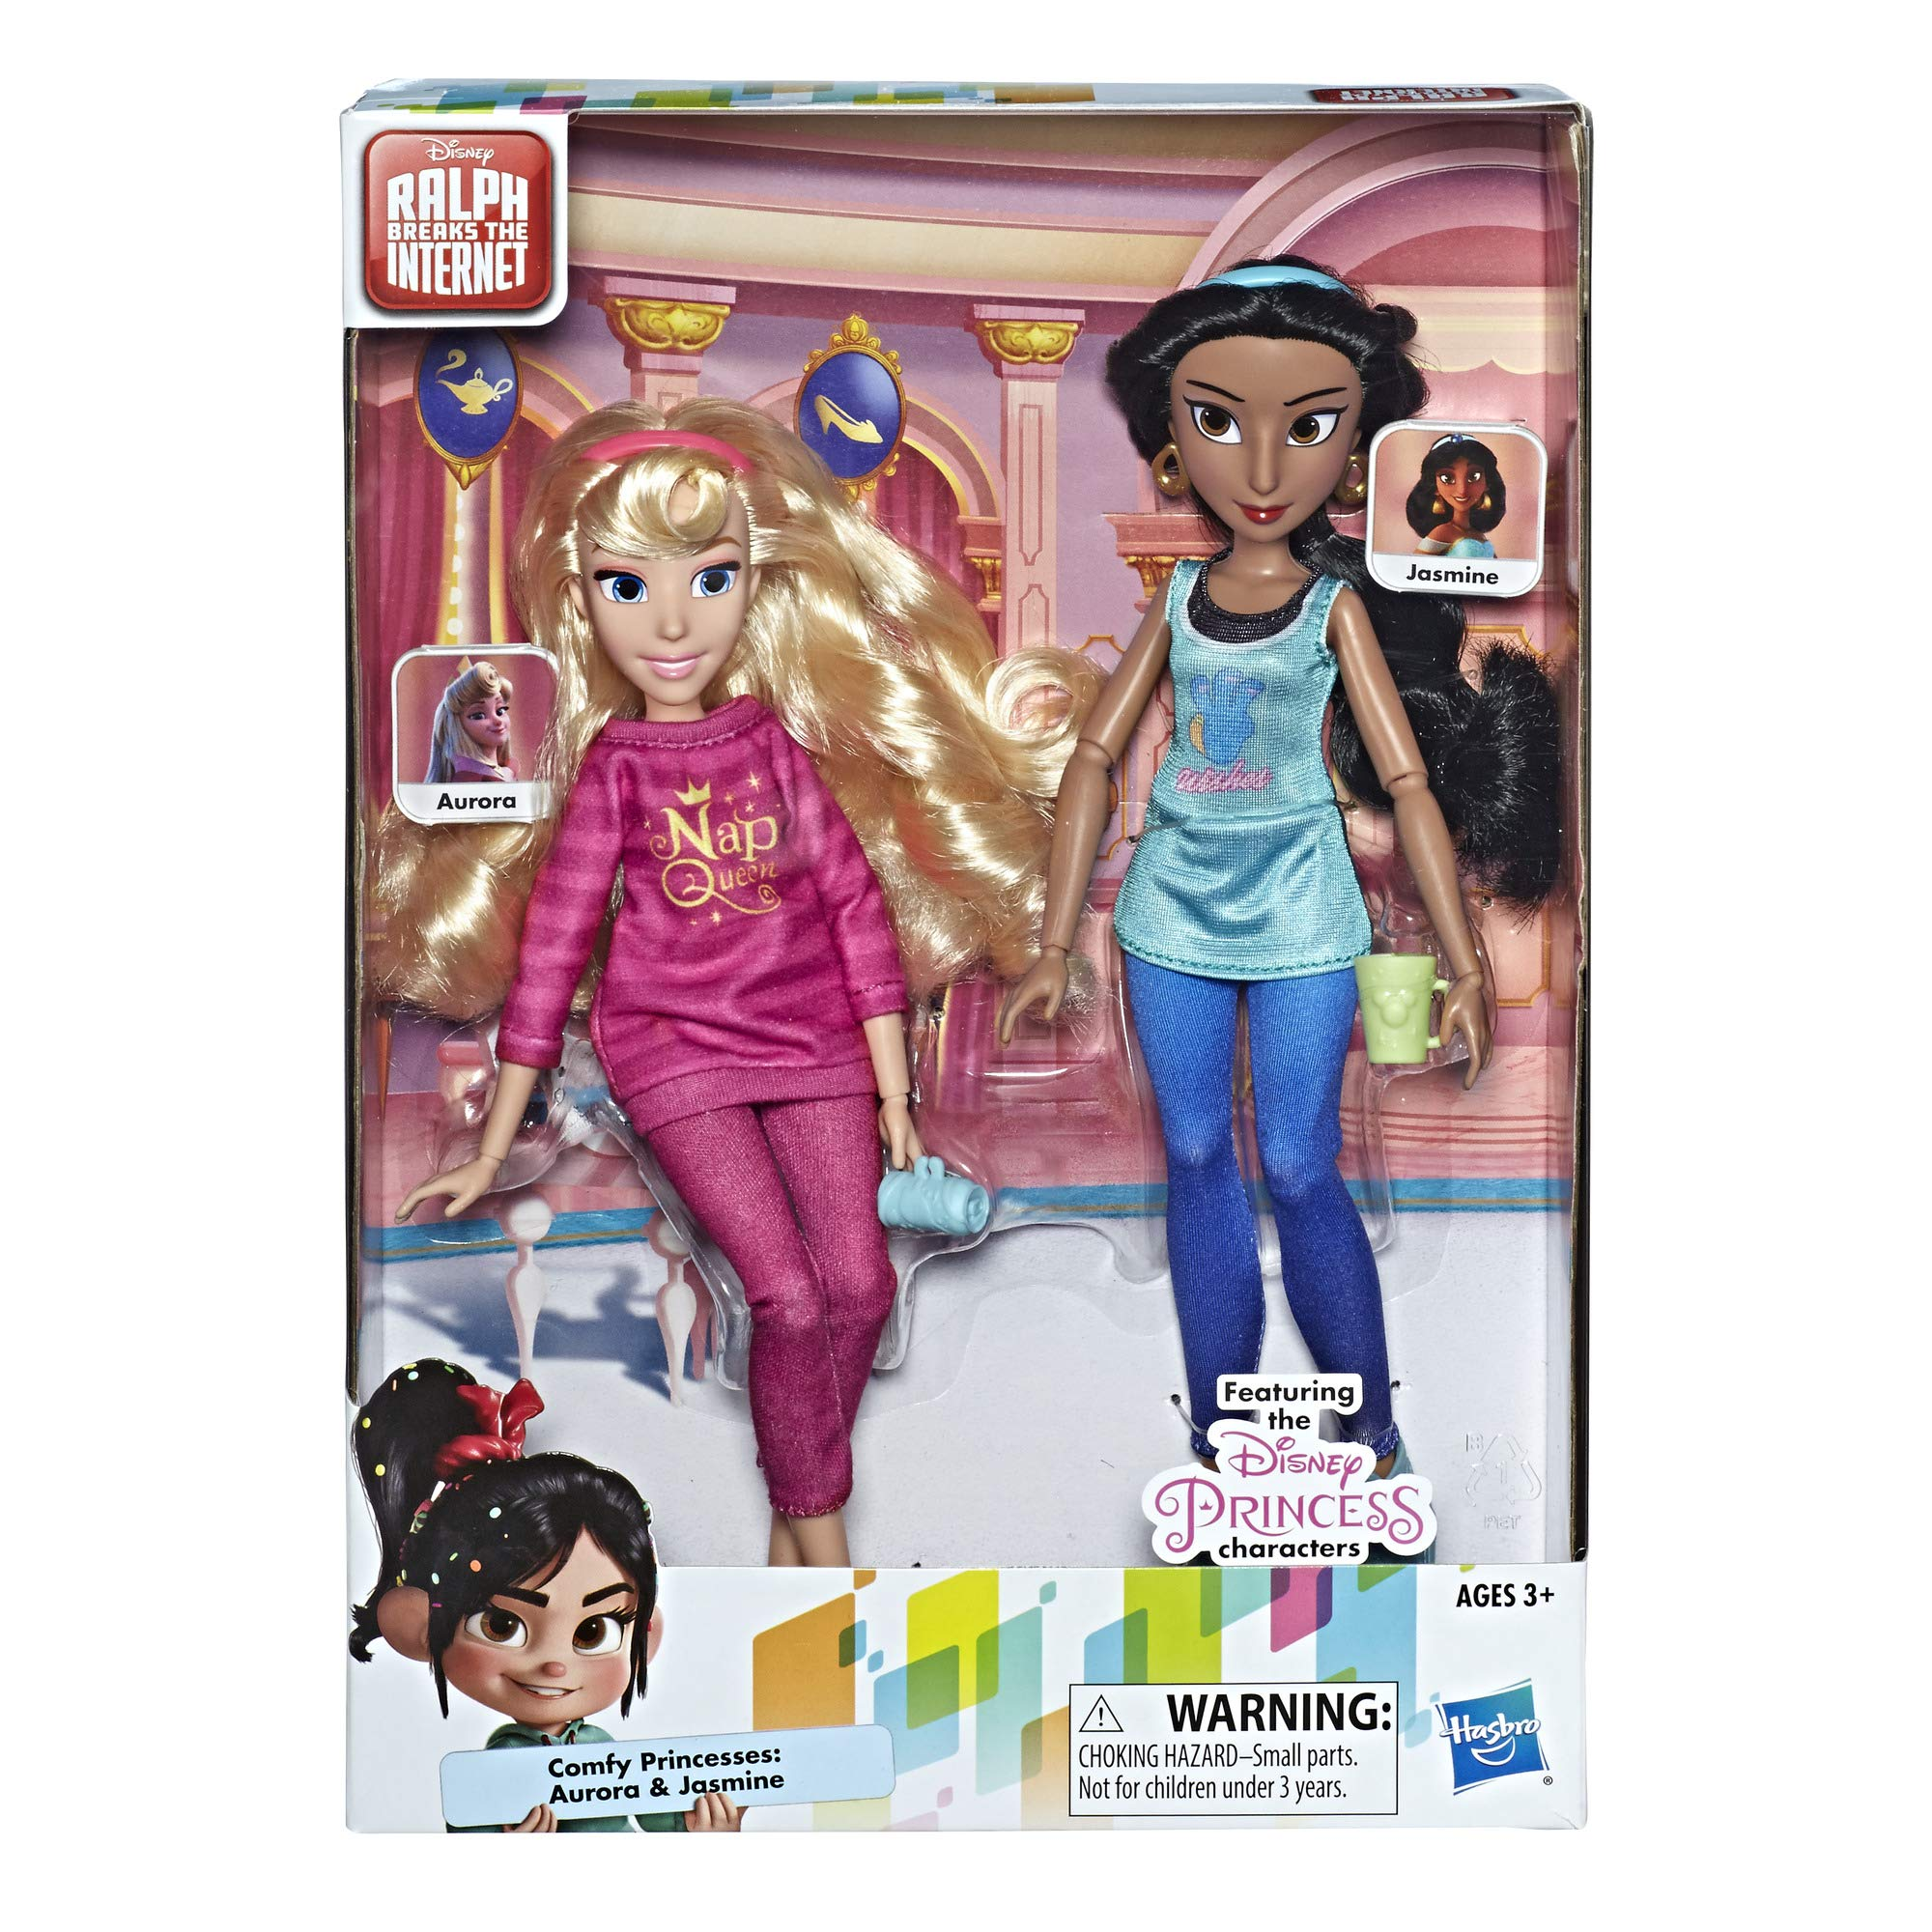 Disney Princess Ralph Breaks The Internet Movie Dolls Jasmine Auror Powermerchandisers Llc